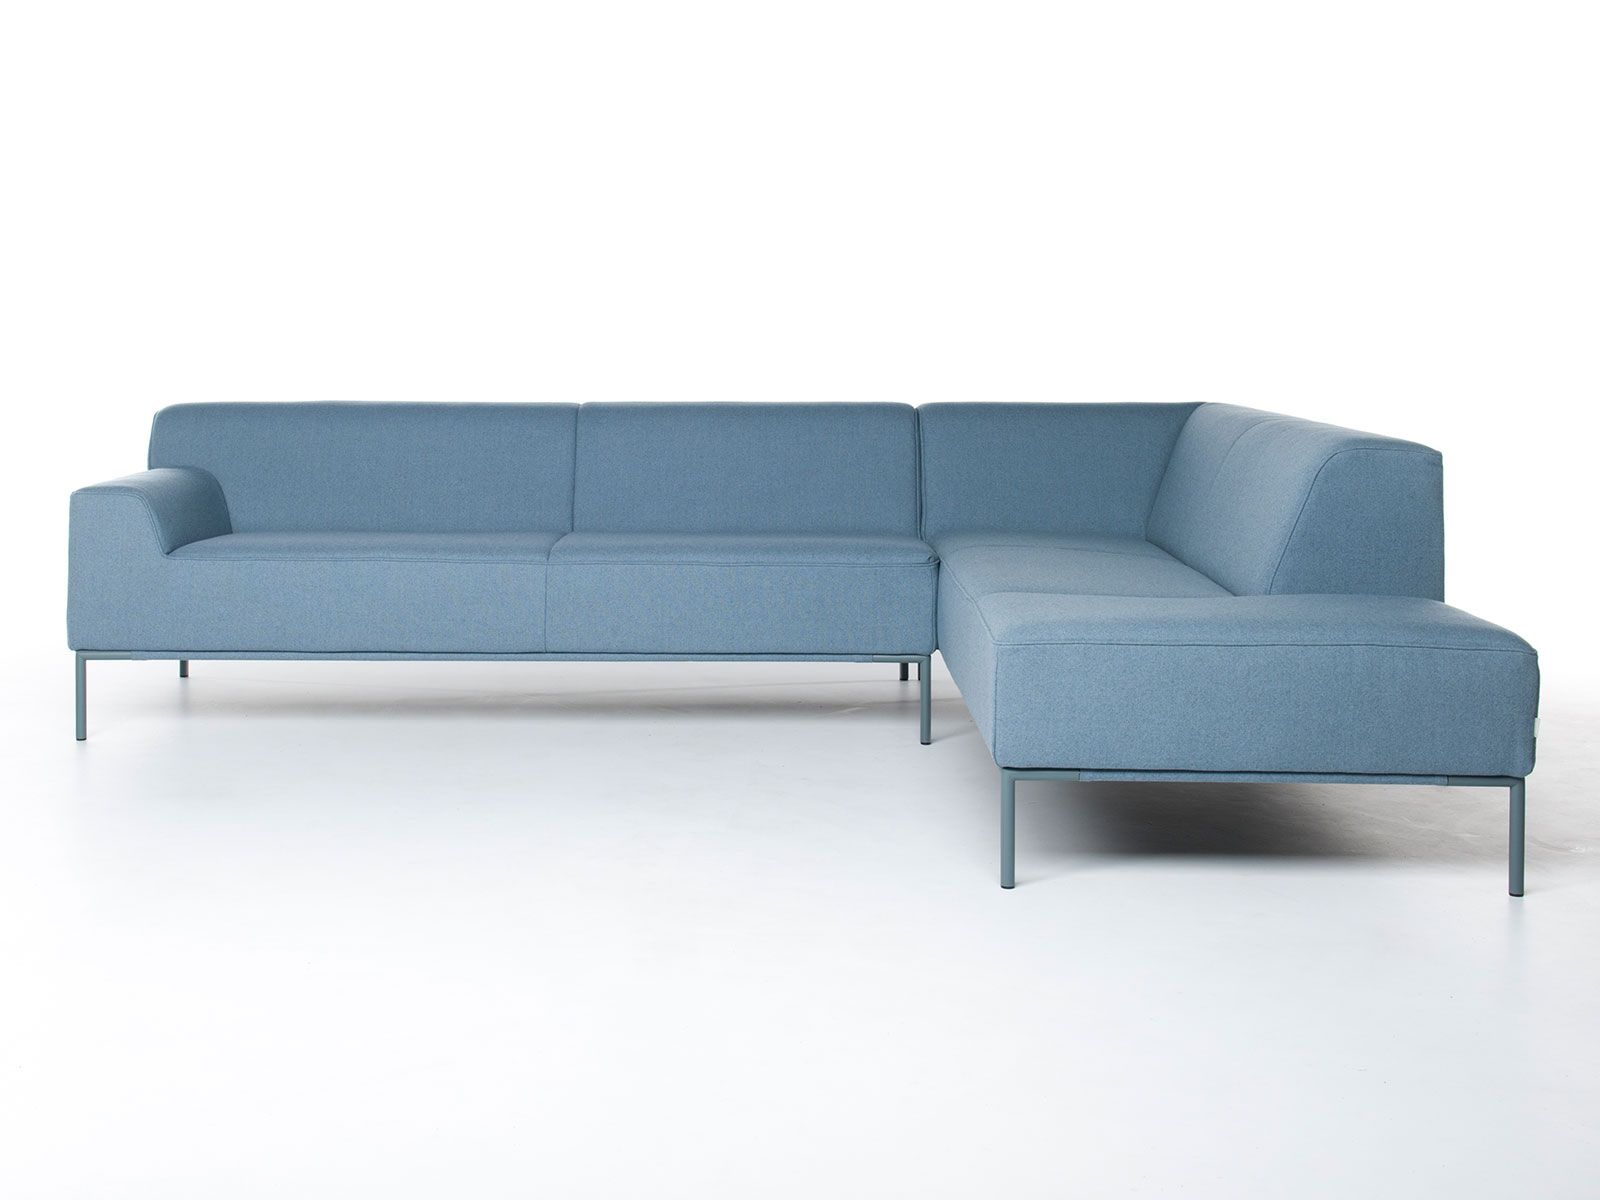 Dutch Design Bank.Bertplantagie Bert Plantagie Furniture Ryke Bank Ryke Design